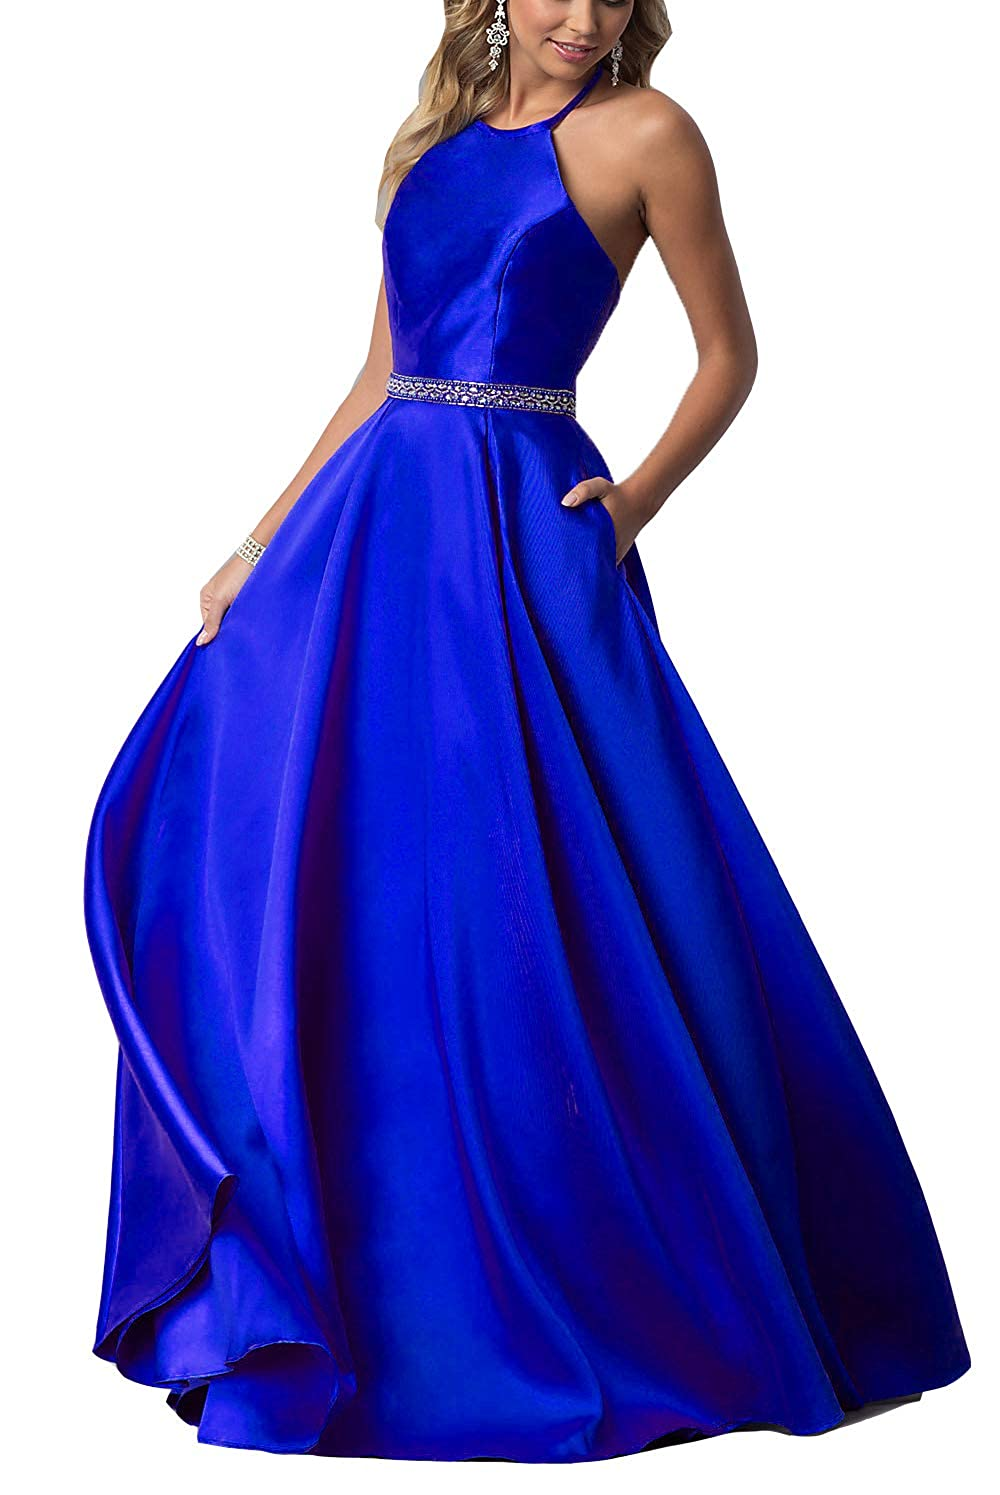 Royal bluee YMSHA Women's Halter Prom Dresses with Pockets Long Satin Crystal Evening Formal Gown O38PM